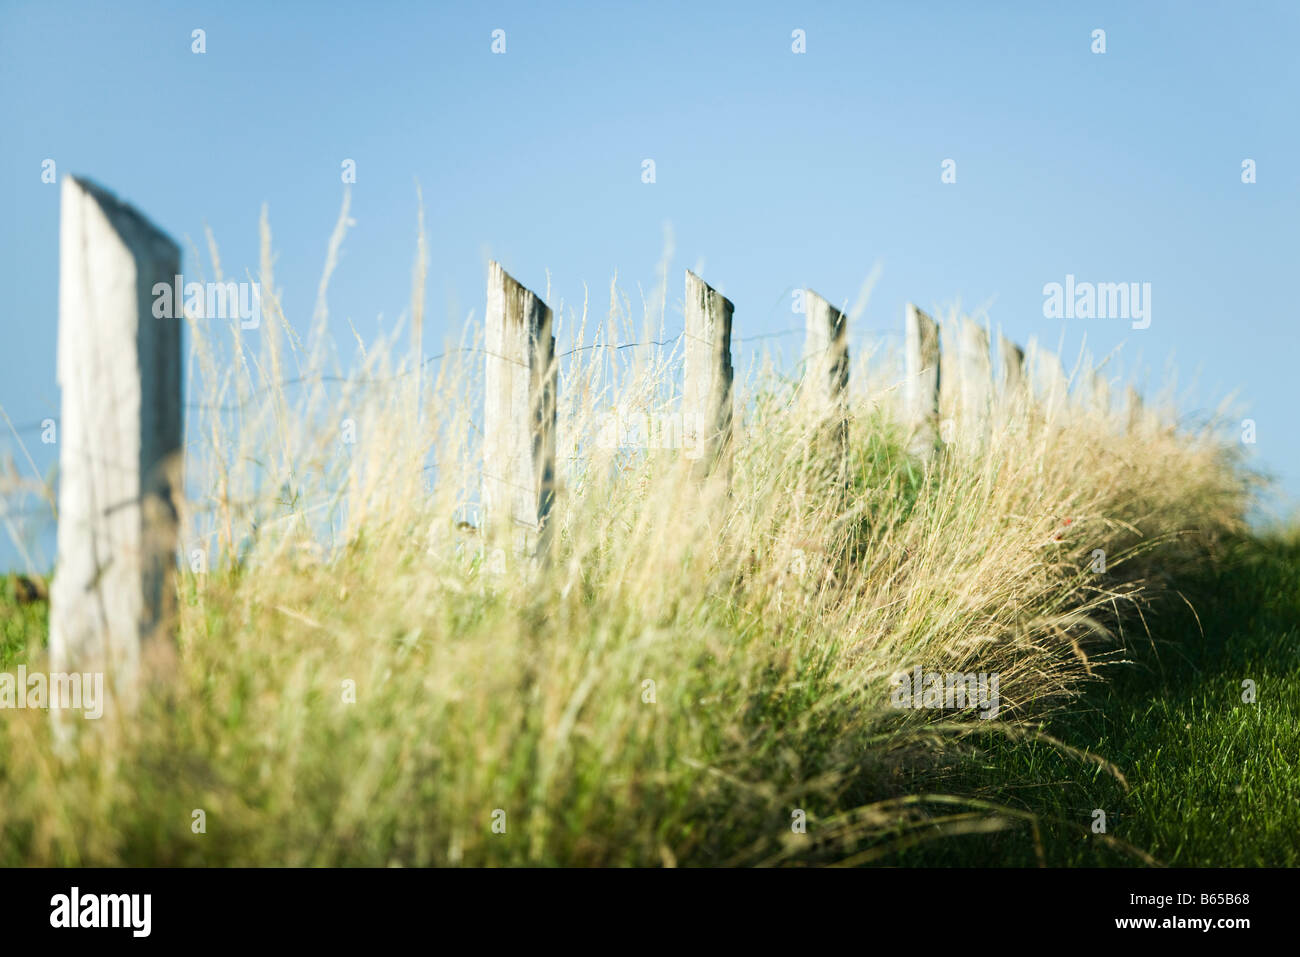 Fence in tall grass - Stock Image